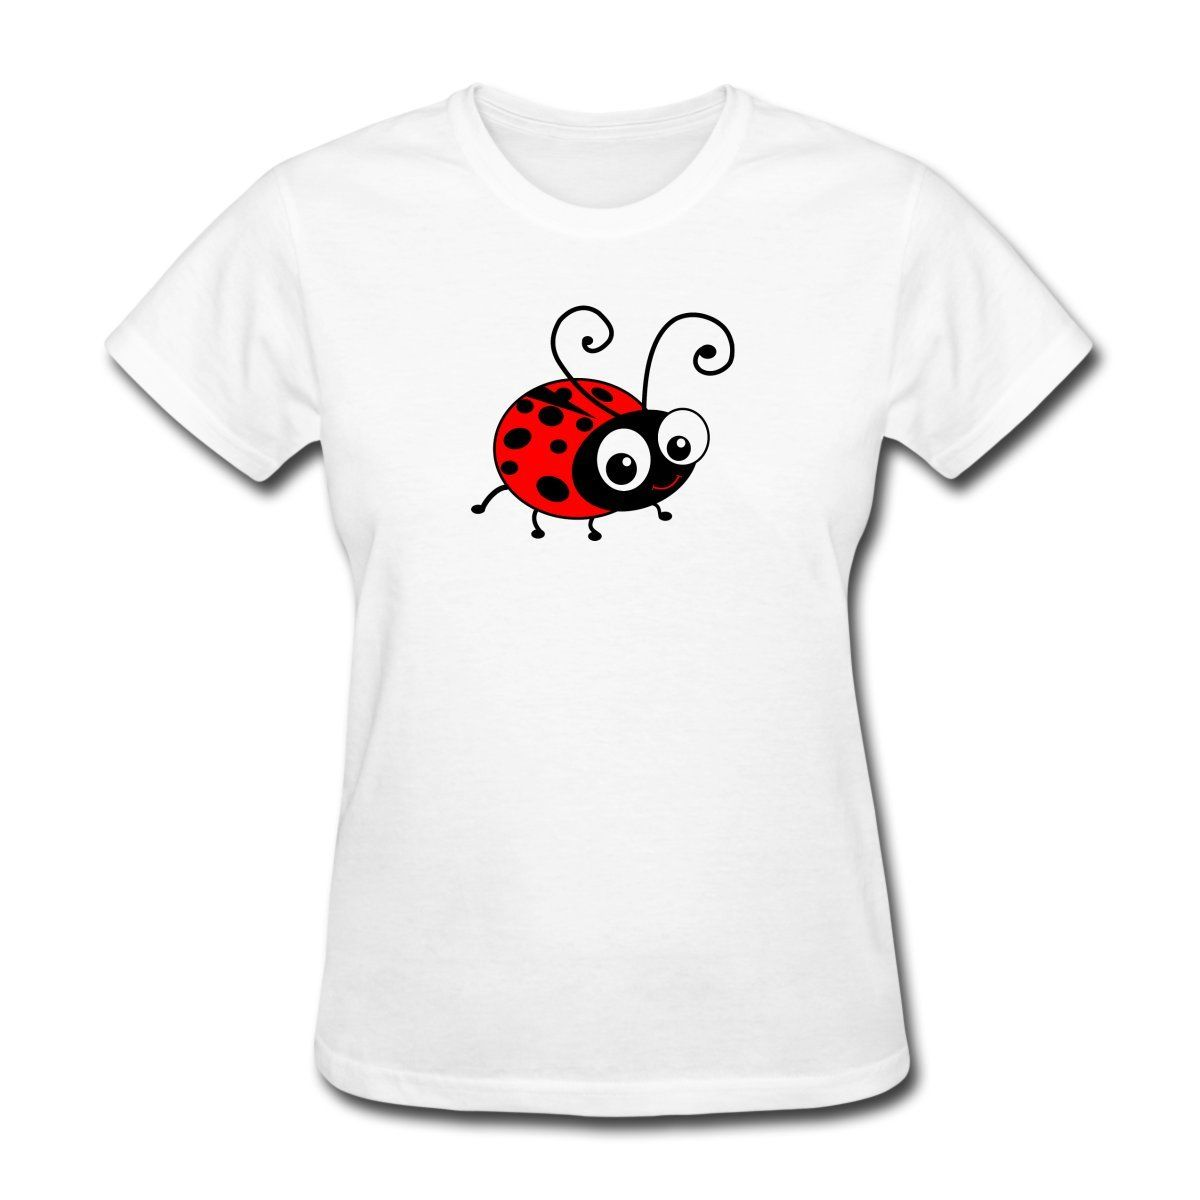 a426f338e Cute Ladybug Women's T-Shirt Female T Shirt Kawaii Hip Hop Brand Women  Flash Summer